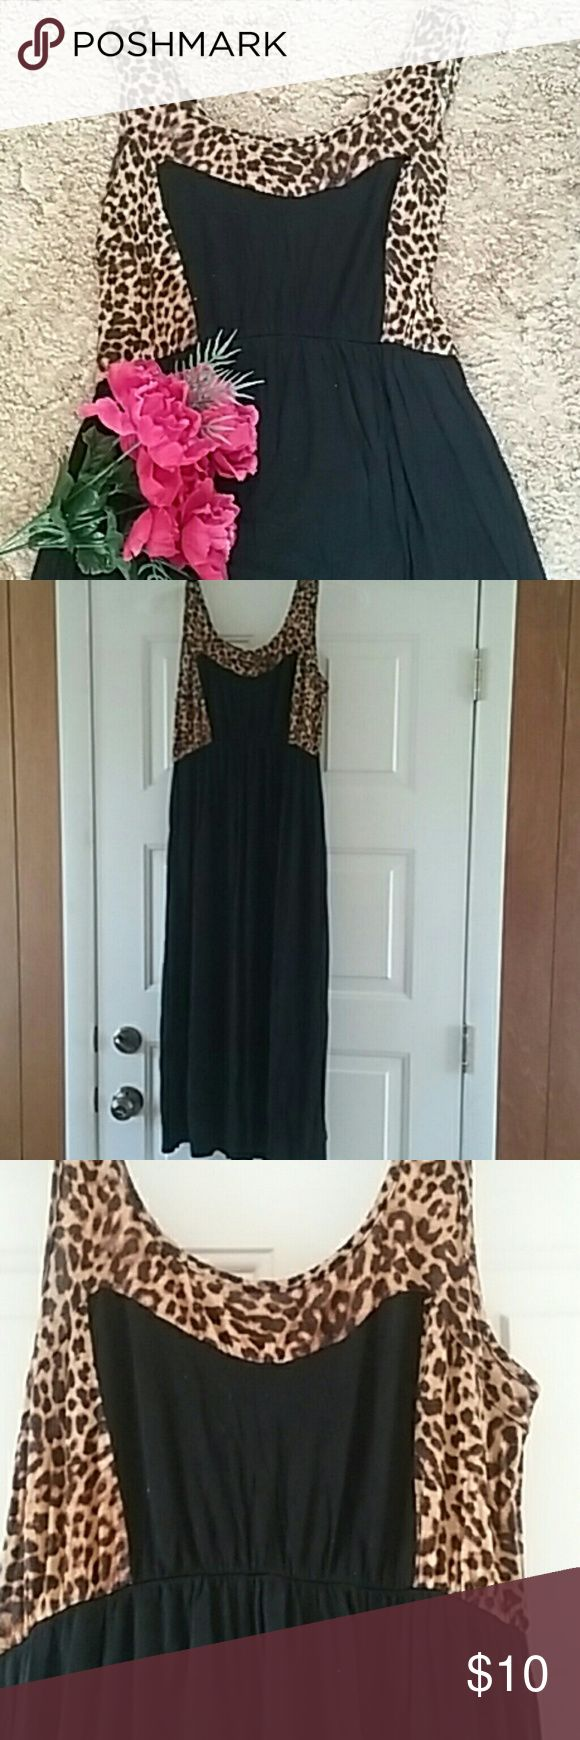 Leopard Maxi dress Leopard and black color block maxi dress. Is actually a maternity dress, but looks great used as a regular dress as well! Very light weight and flowy material. ping maternity Dresses Maxi